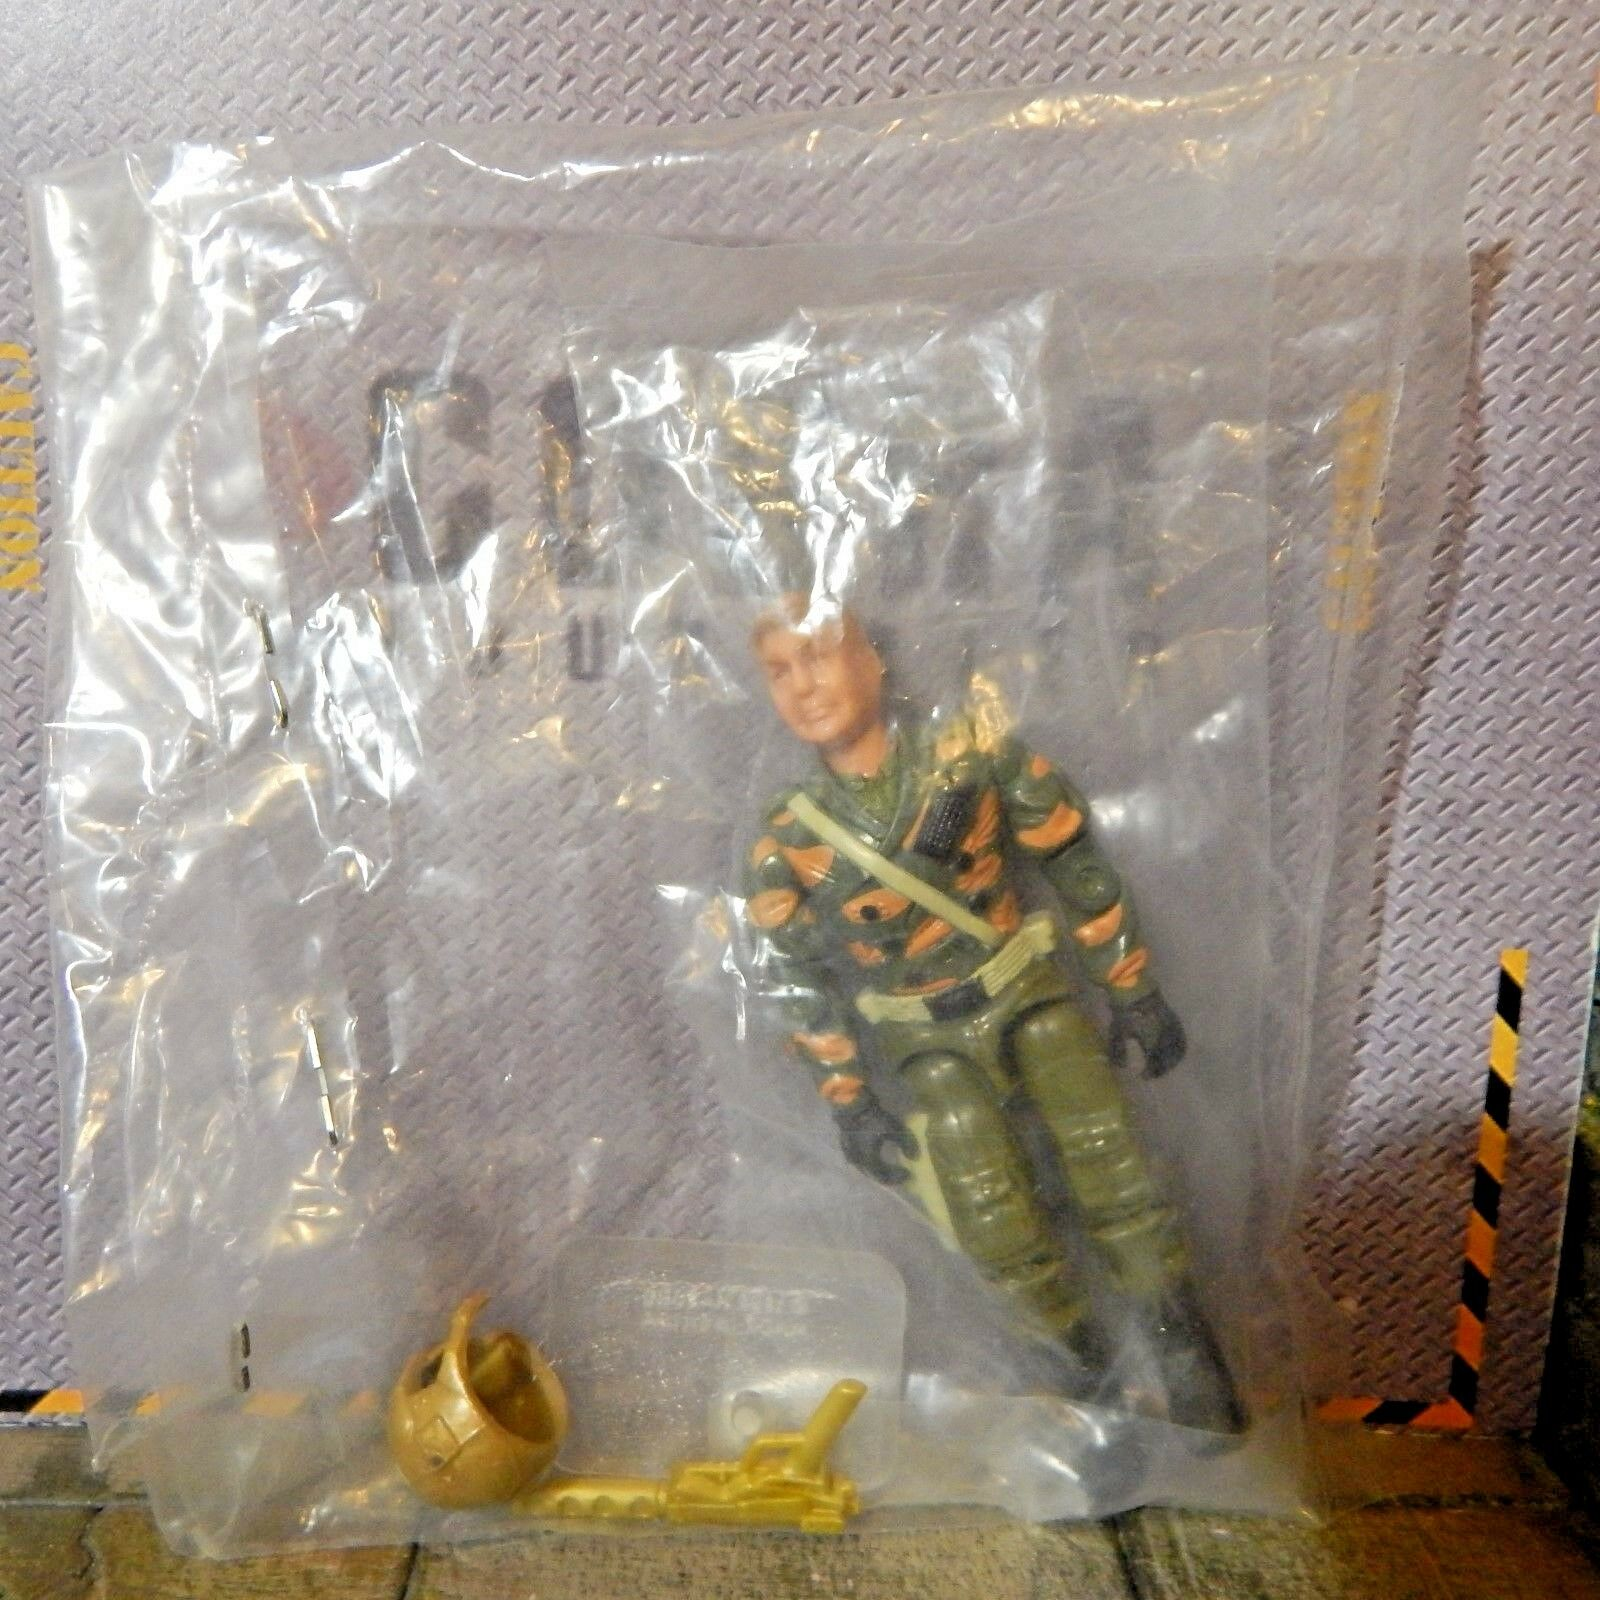 GI JOE  MAJOR STORM MIB MISB  OPERATION ANACONDA CONVENTION 100% complete